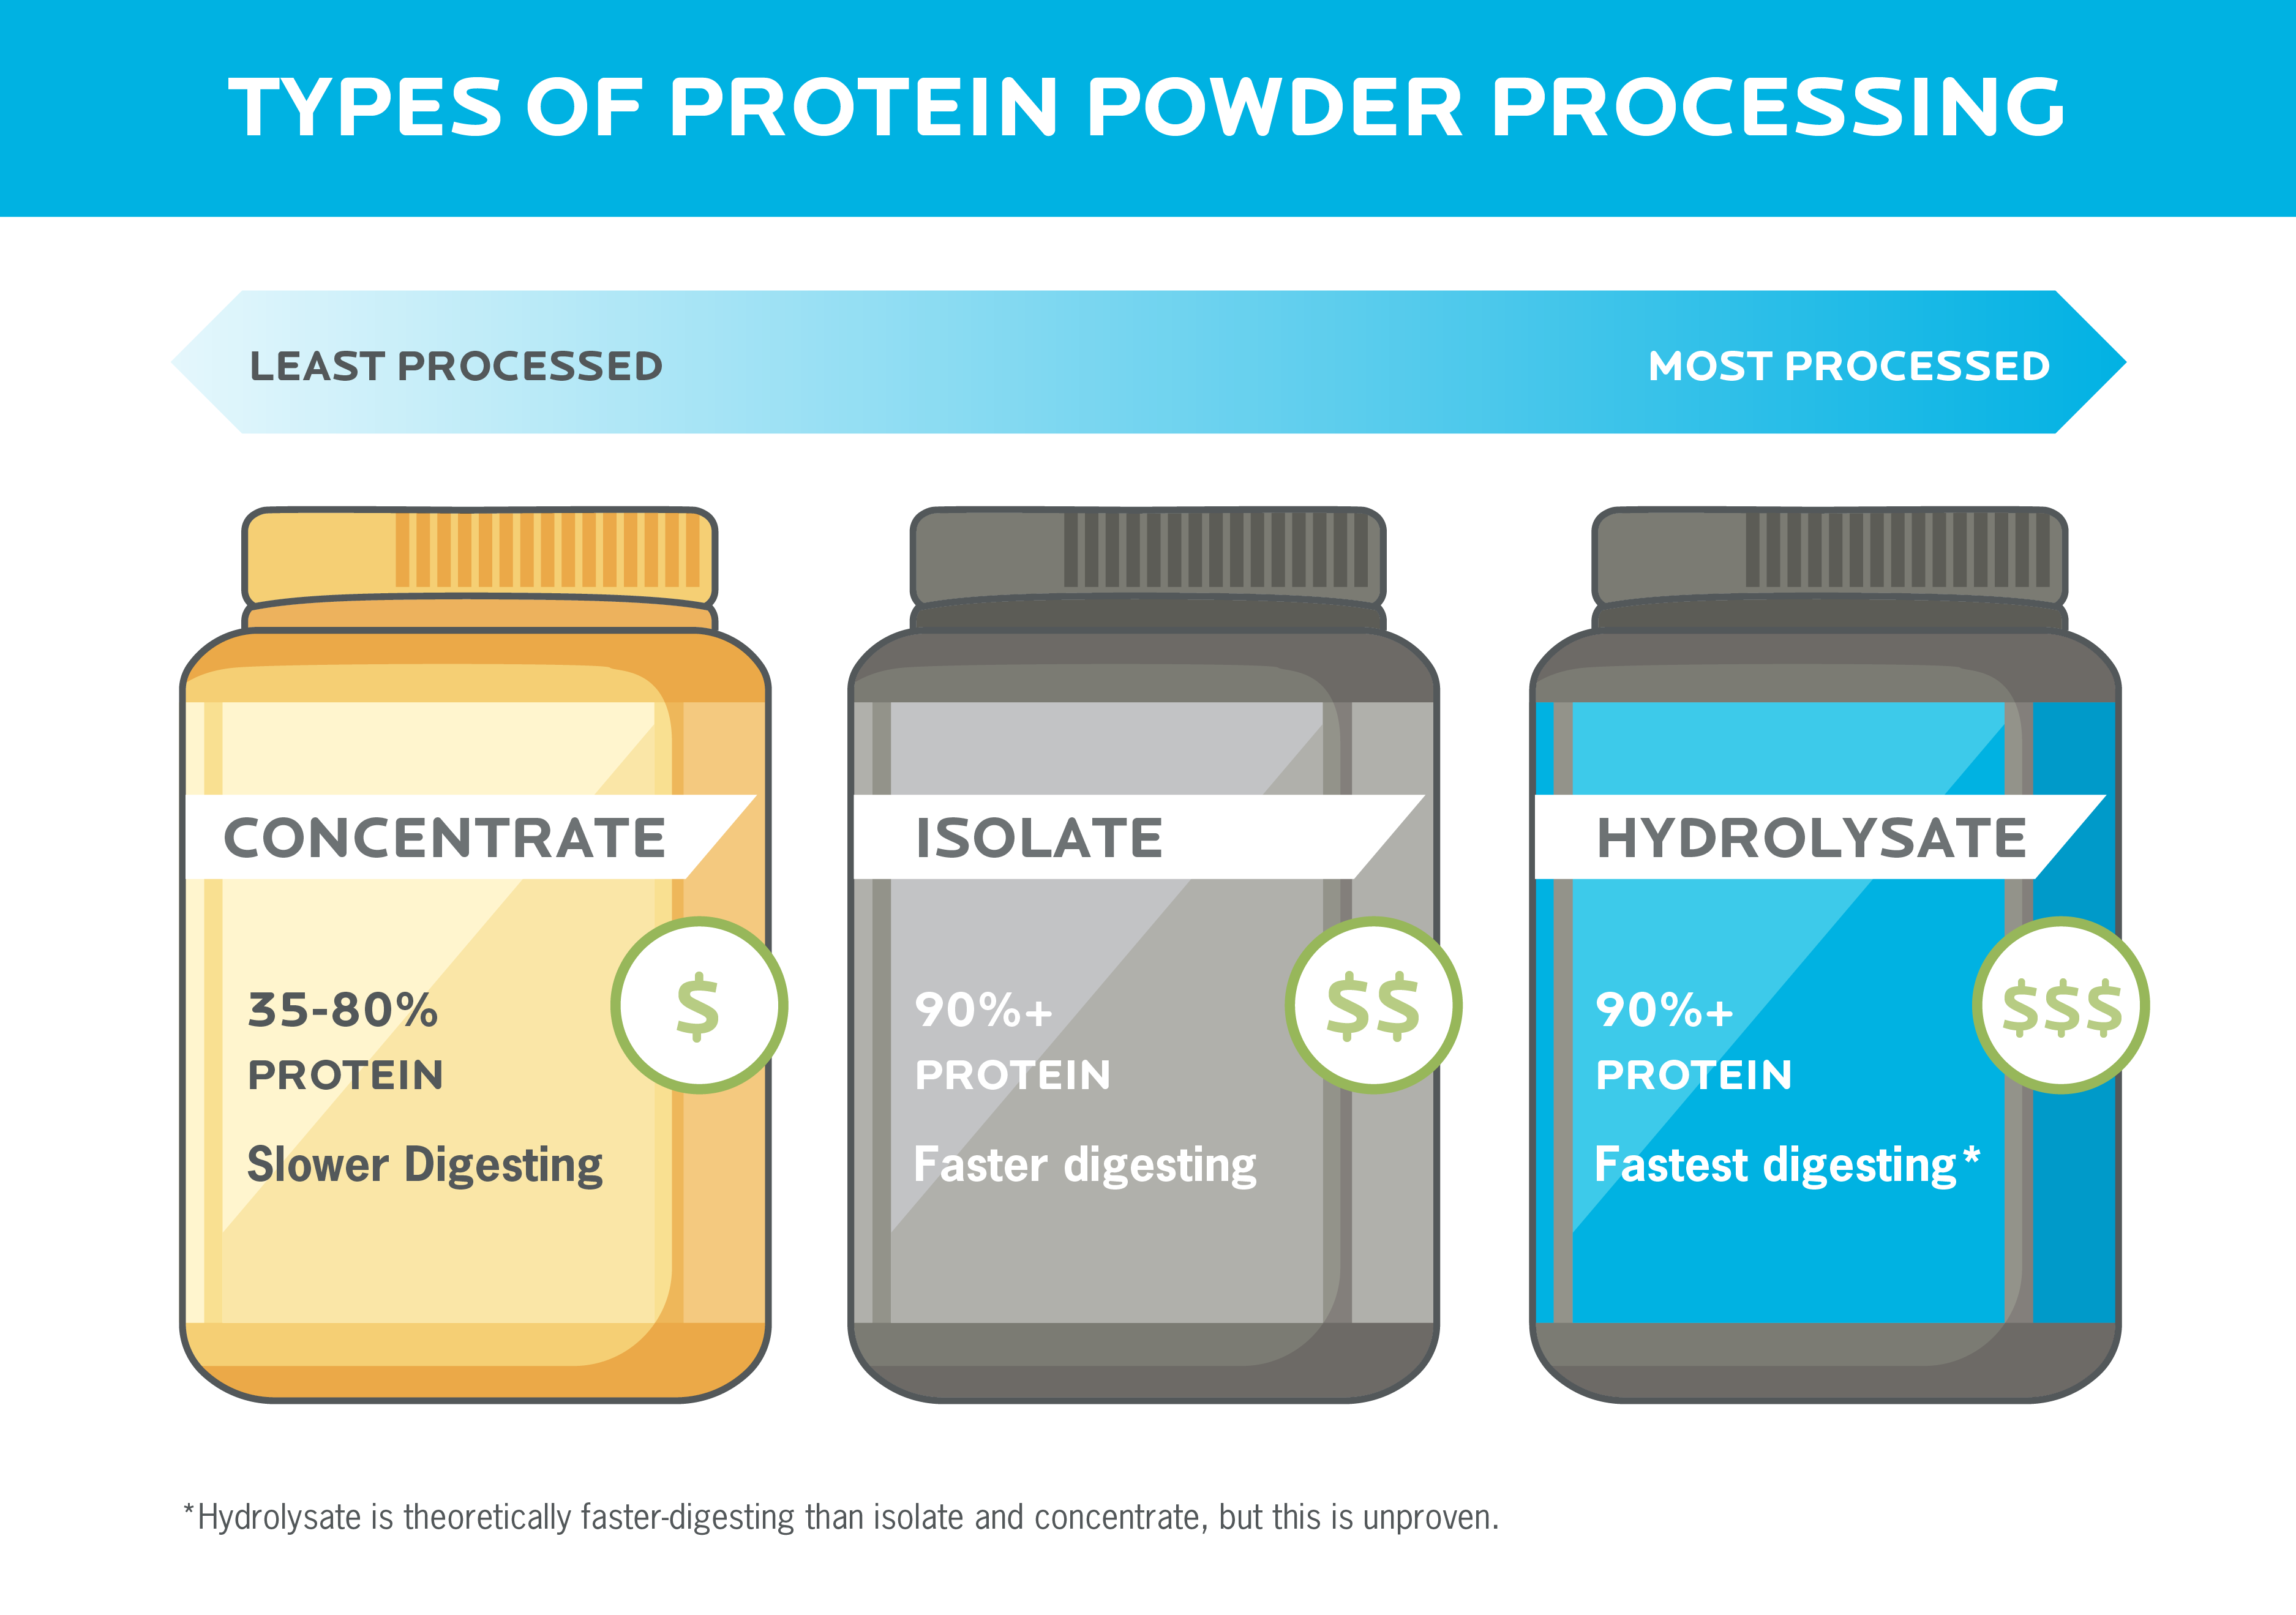 Three tubs of protein powder show the differences between protein concentrate, isolate, and hydrolysate.